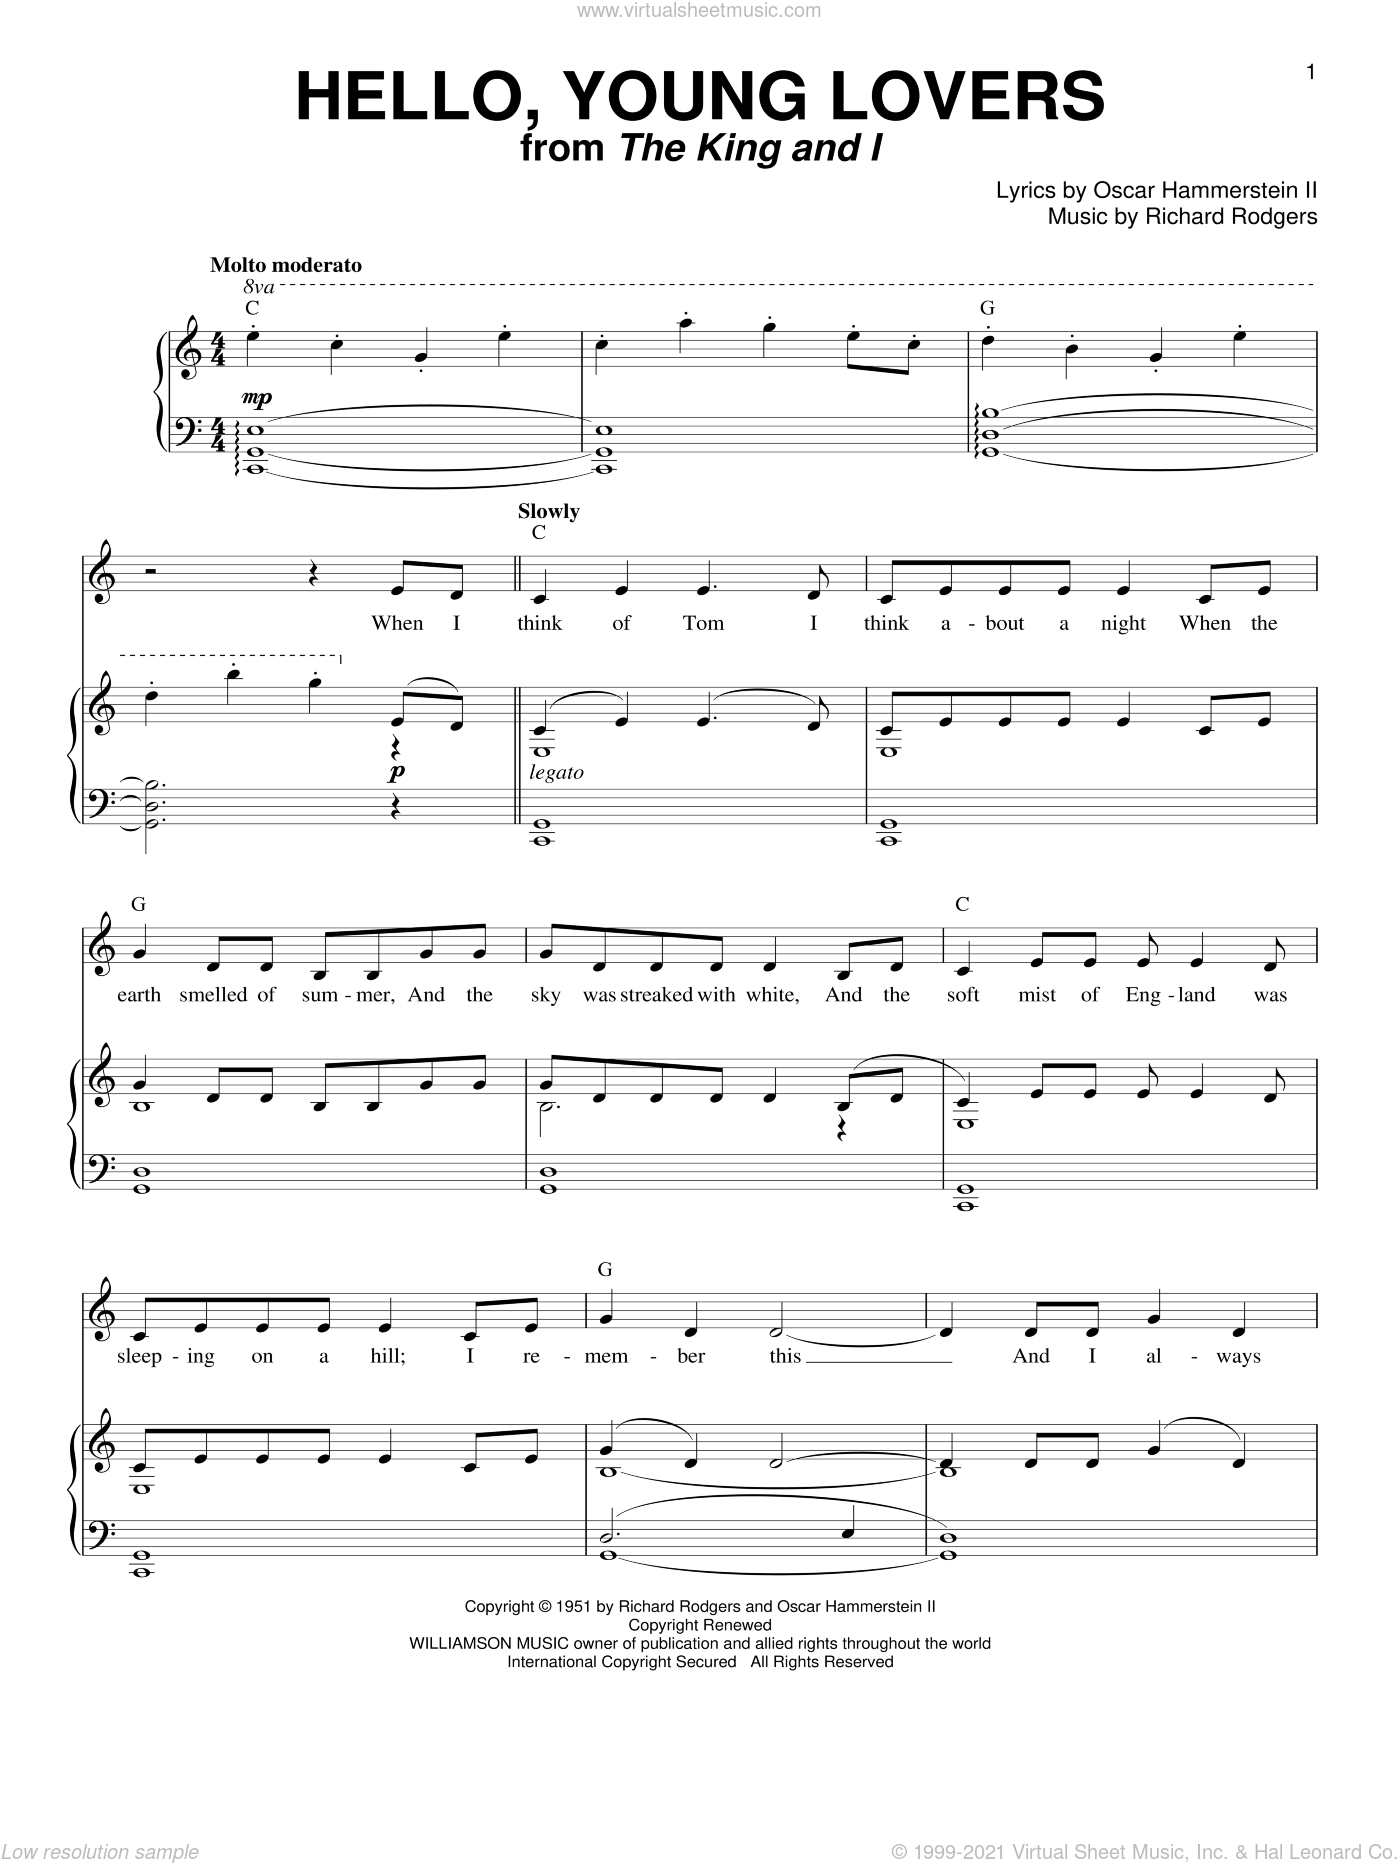 Hello, Young Lovers sheet music for voice and piano by Rodgers & Hammerstein, Oscar II Hammerstein and Richard Rodgers, intermediate voice. Score Image Preview.